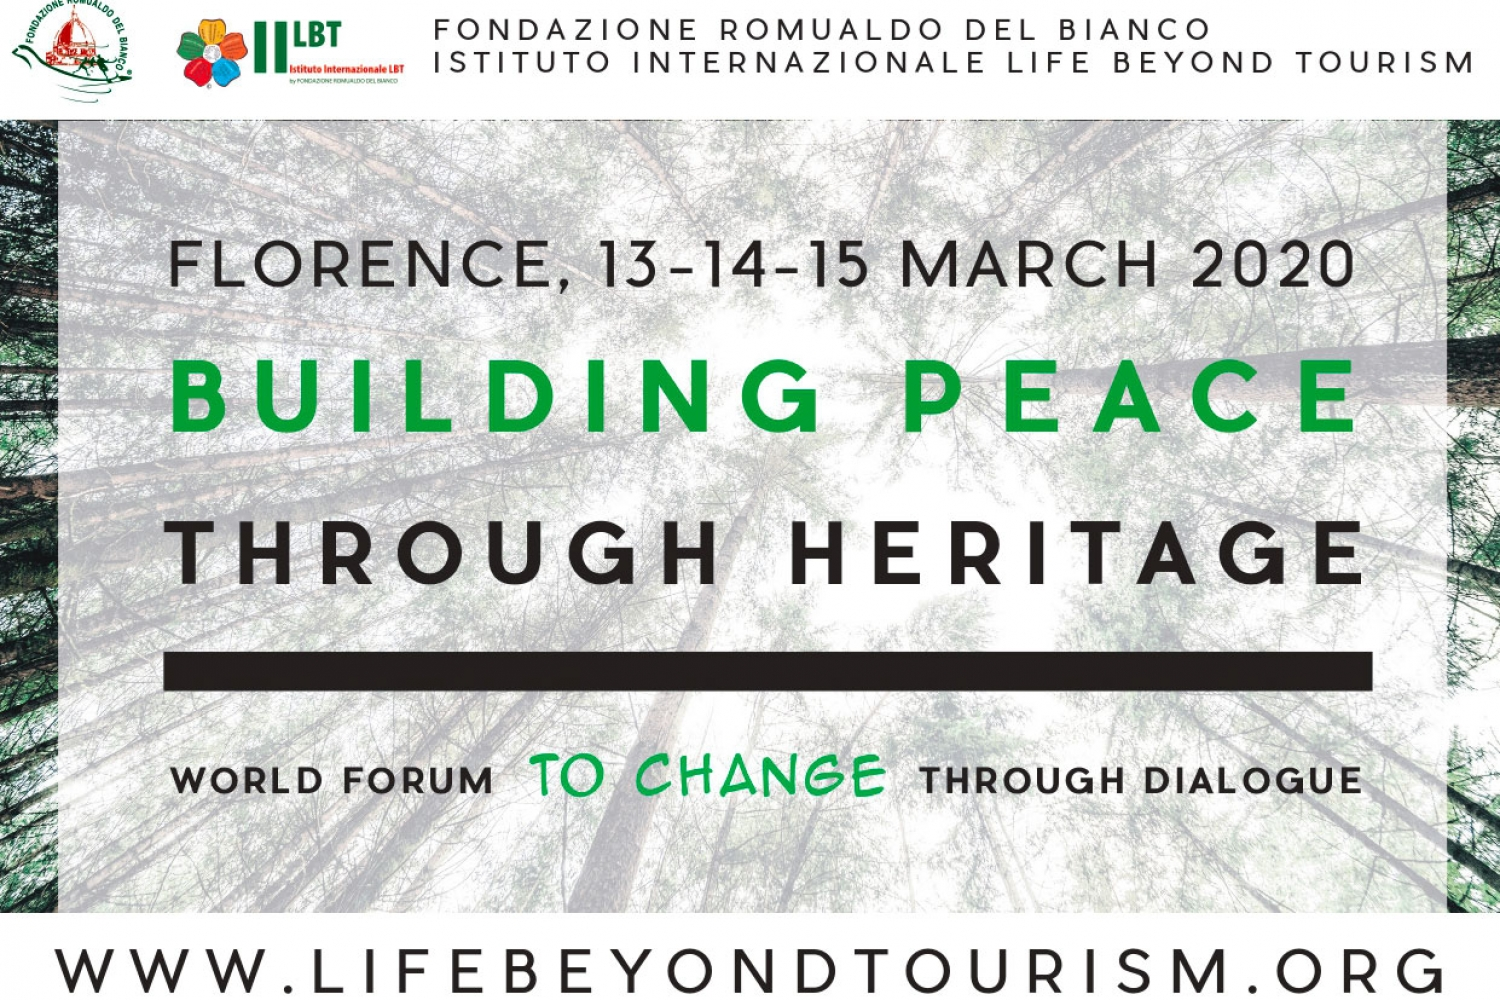 Life Beyond Tourism – Travel to Dialogue